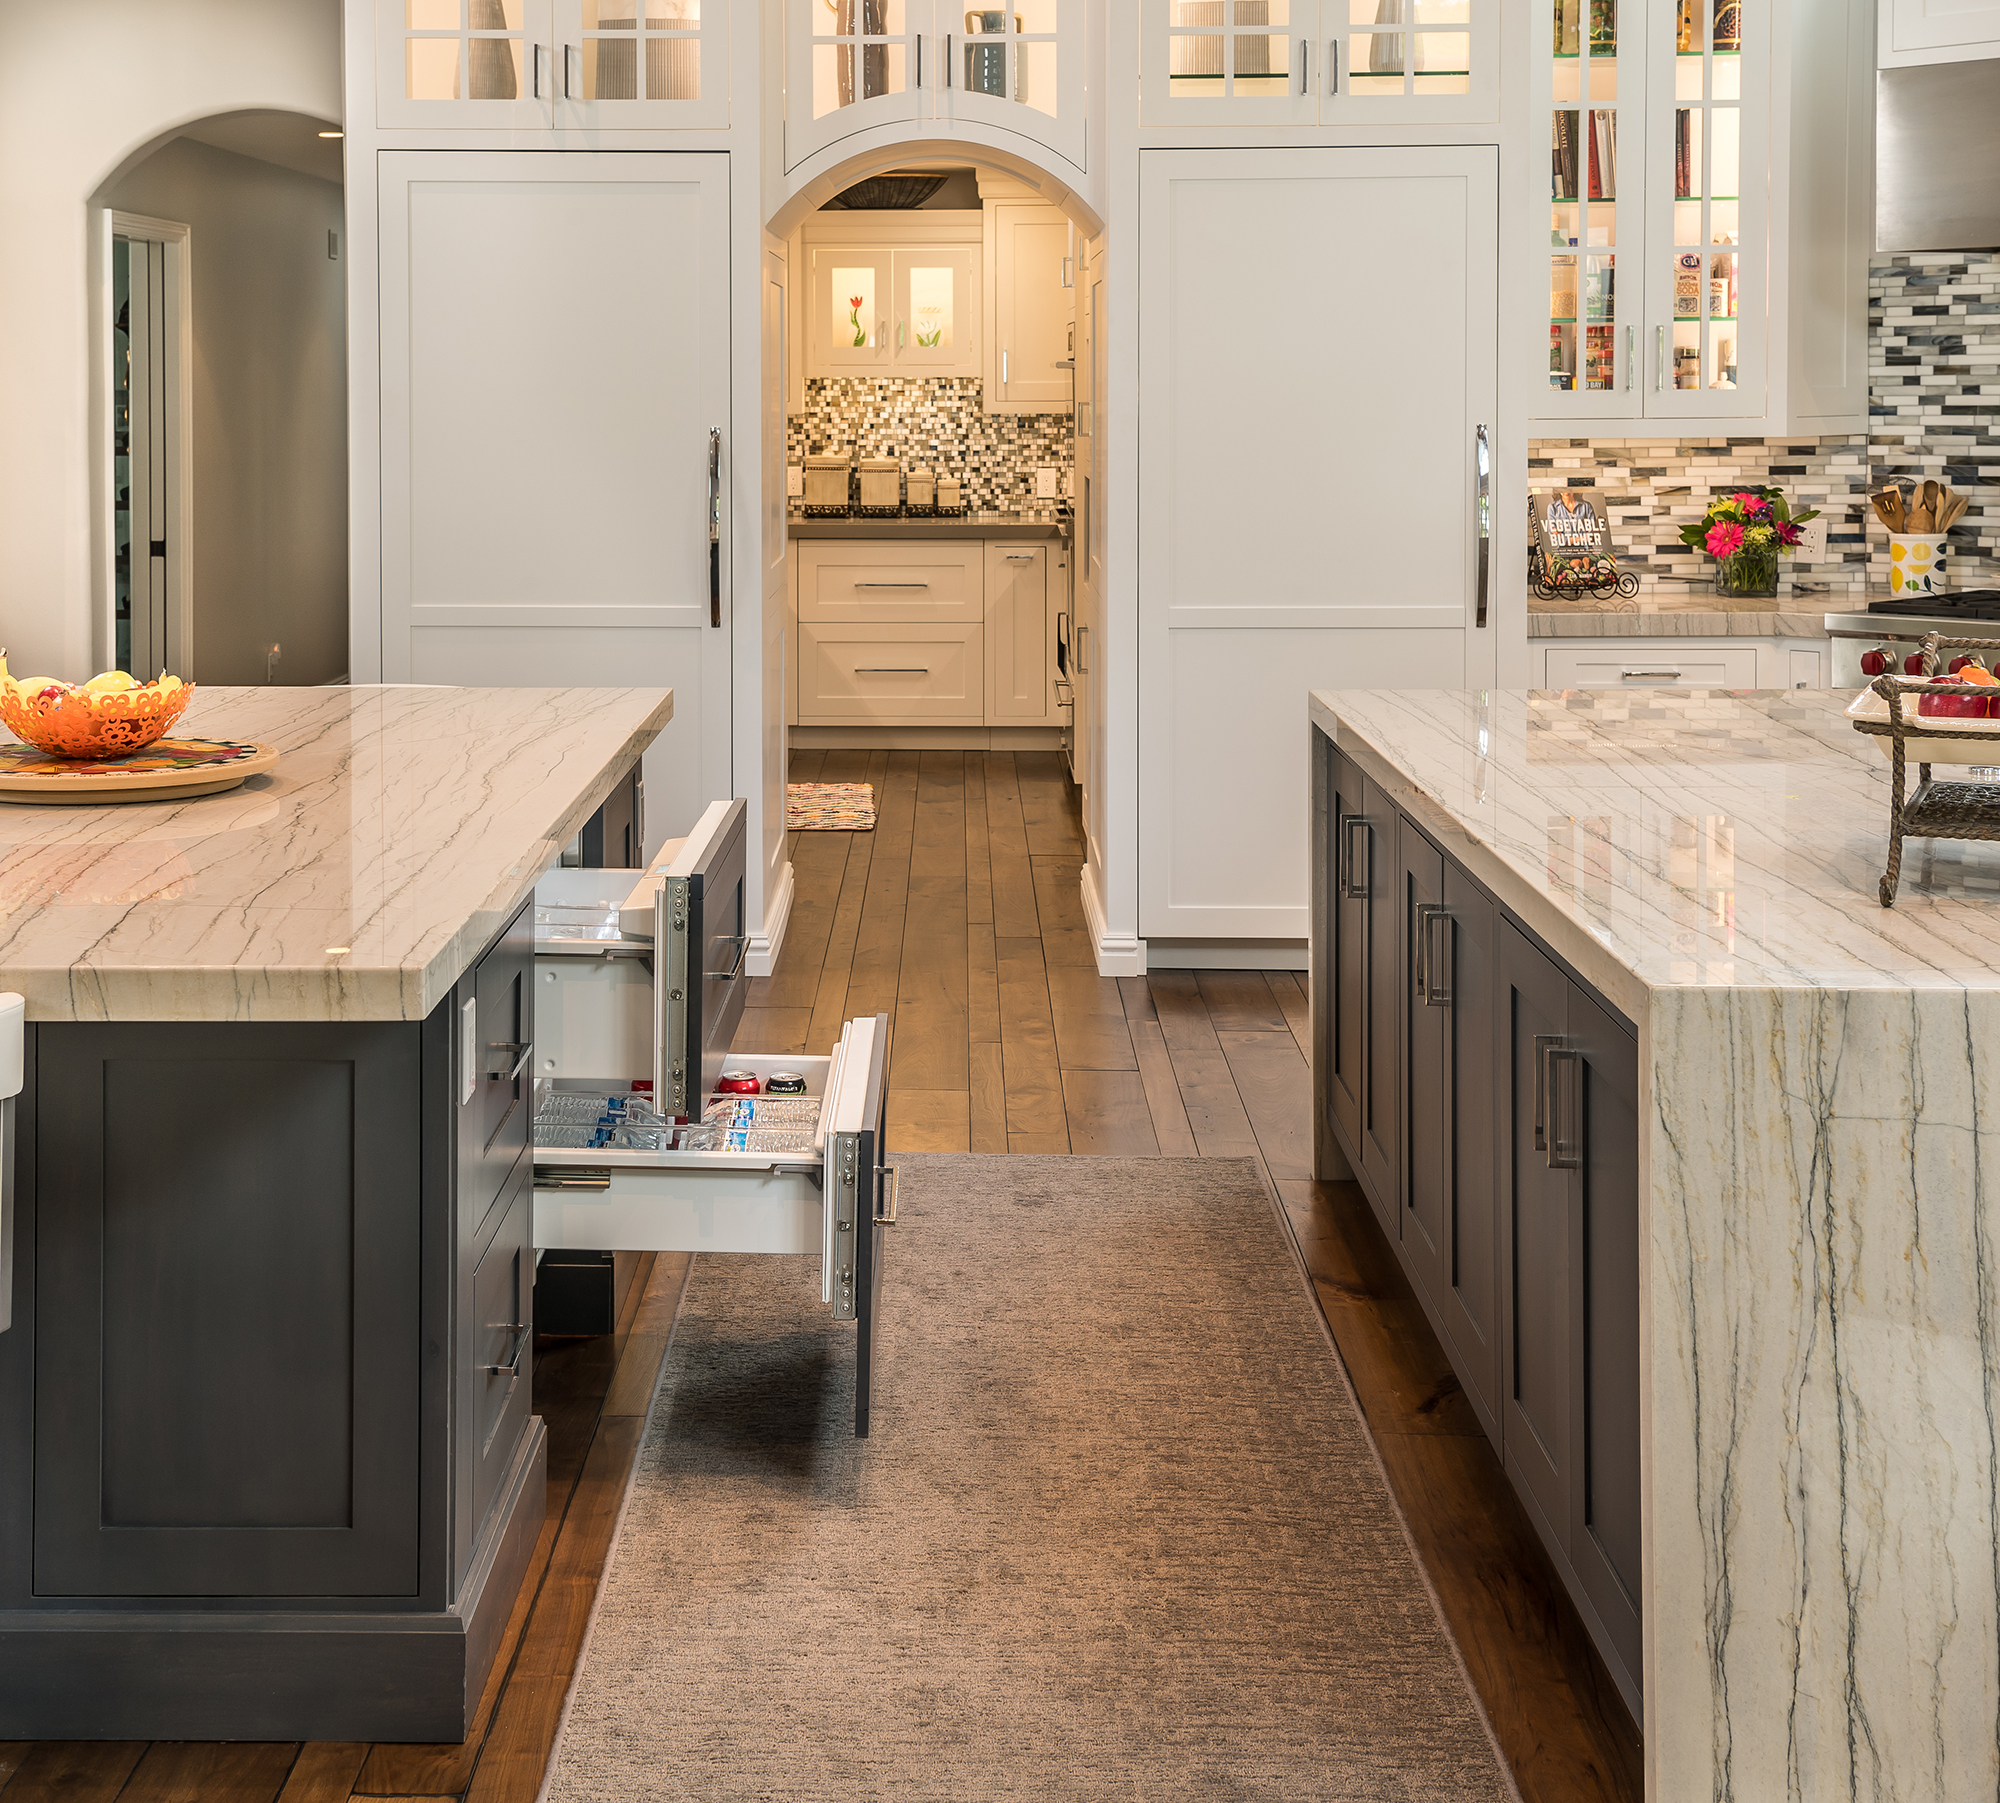 See more kitchen pictures from our Arcadia remodel  HERE